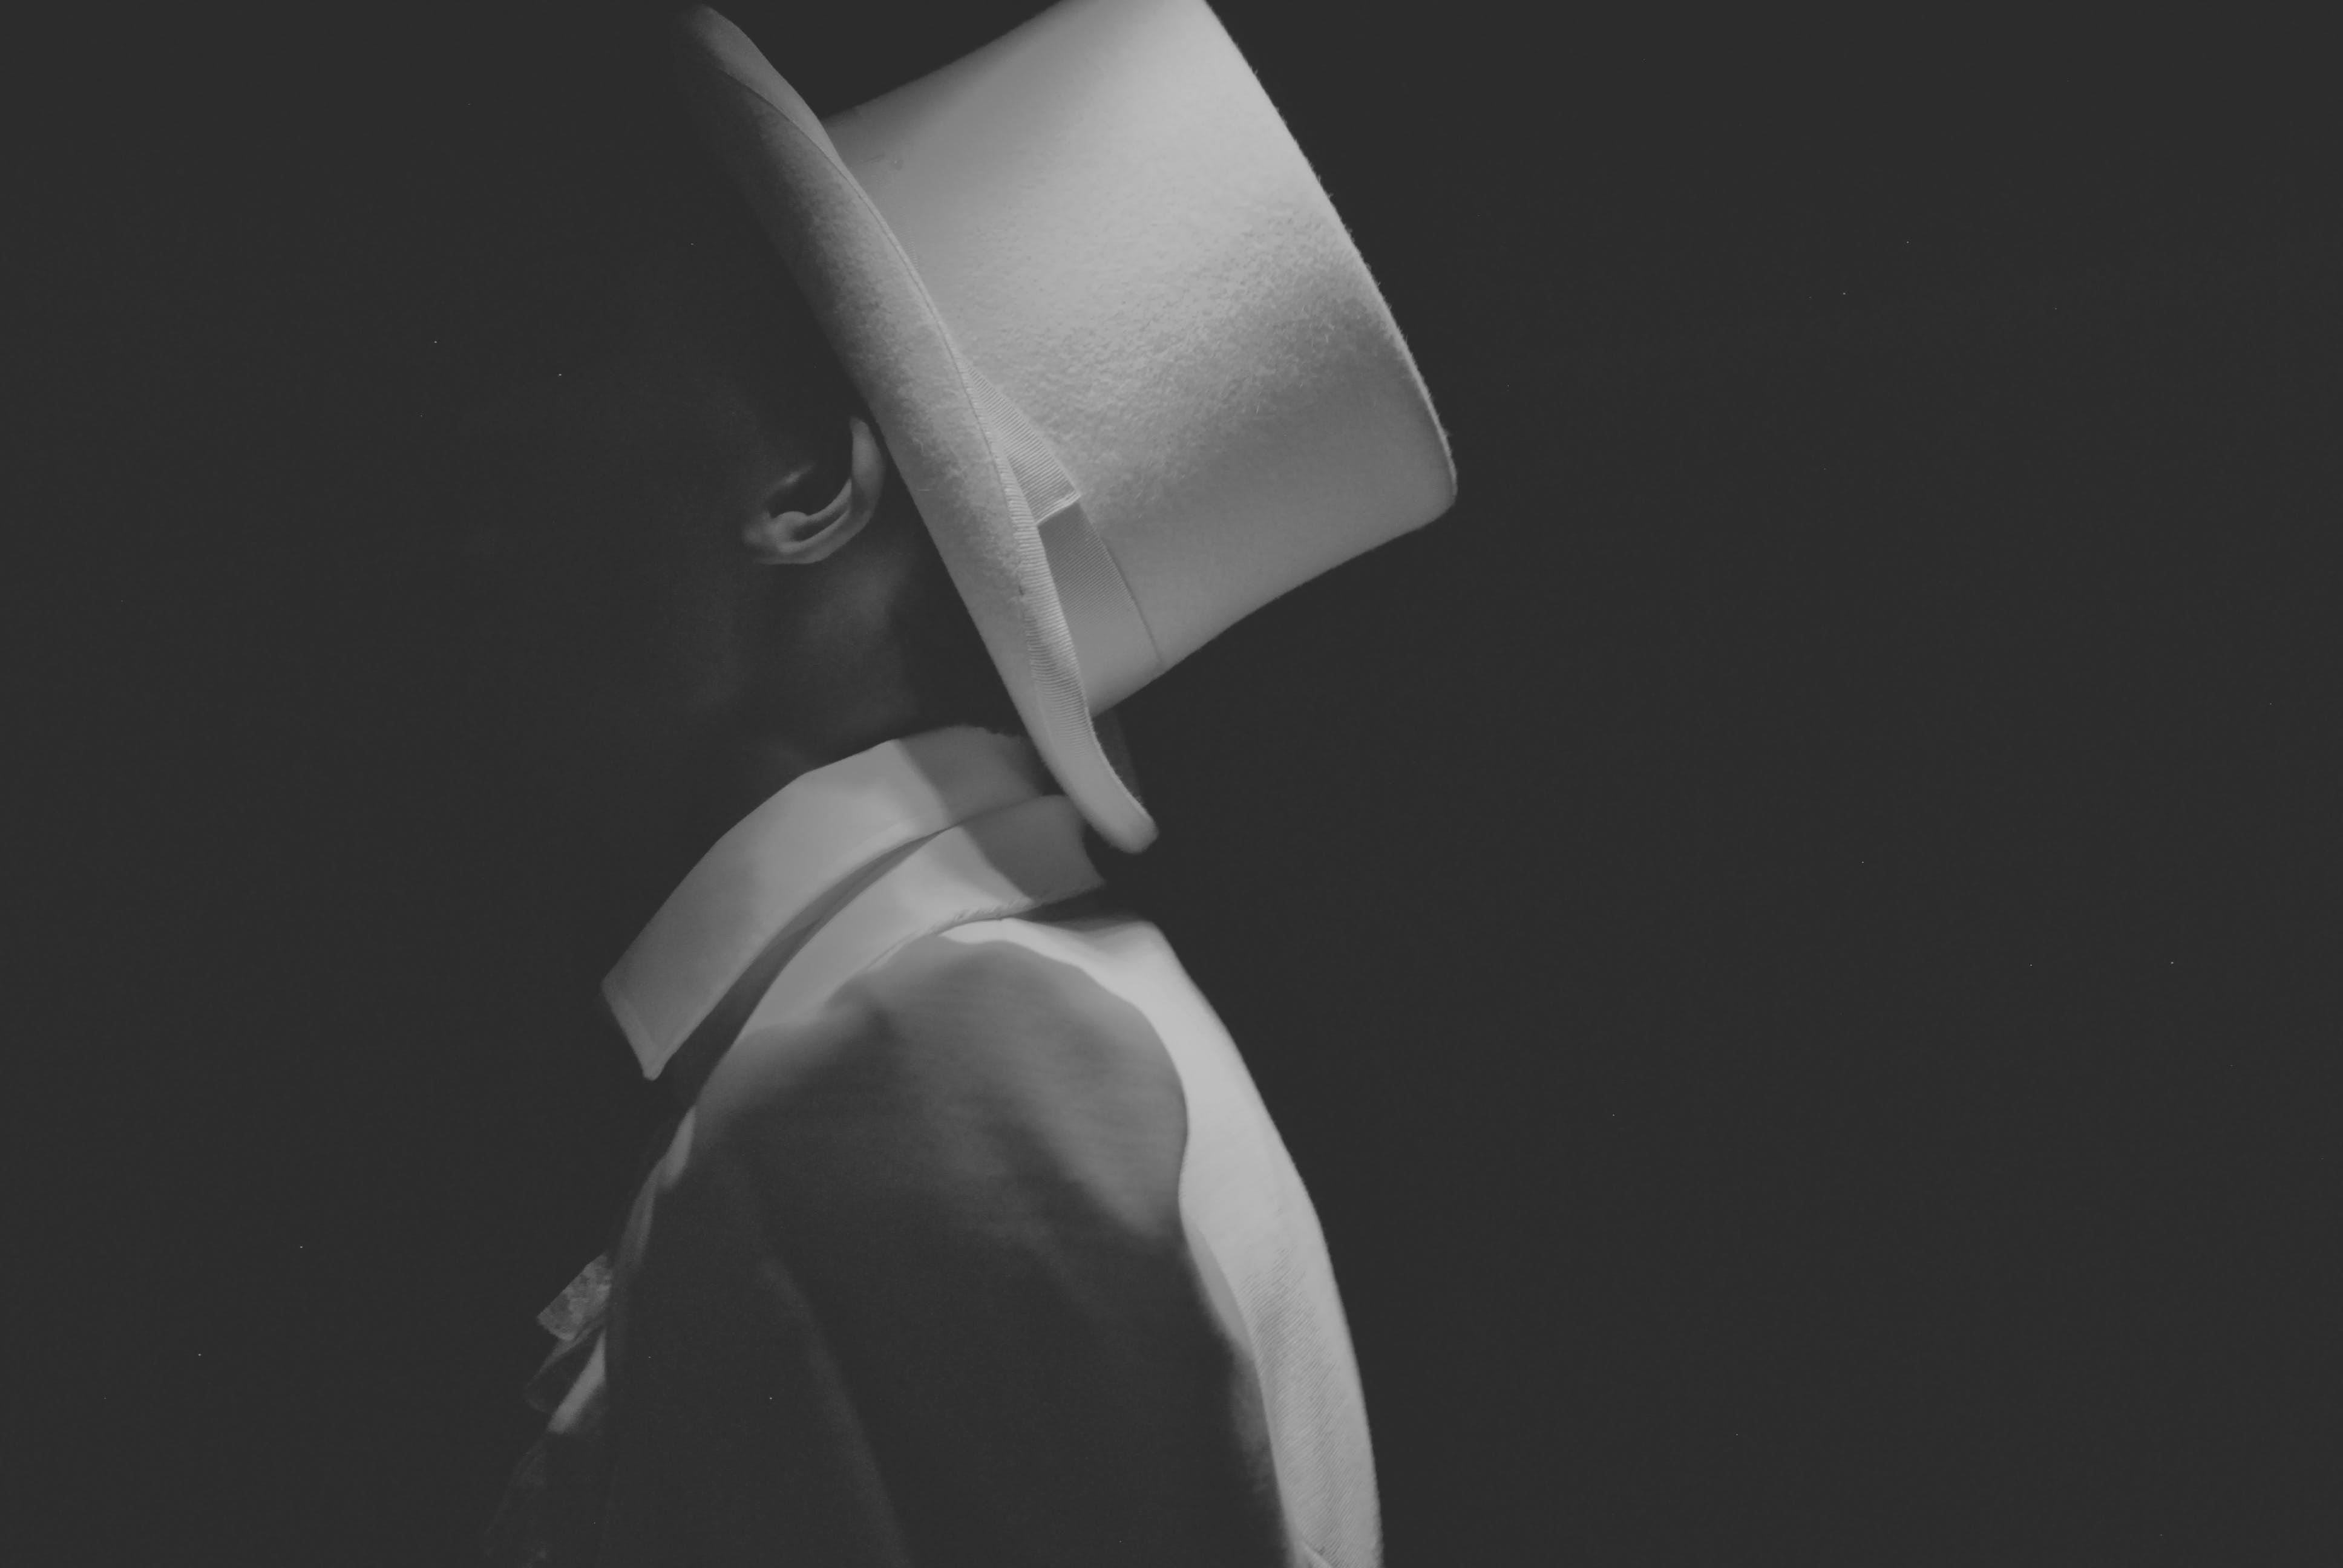 Man Wearing White Hat Greyscale Photography